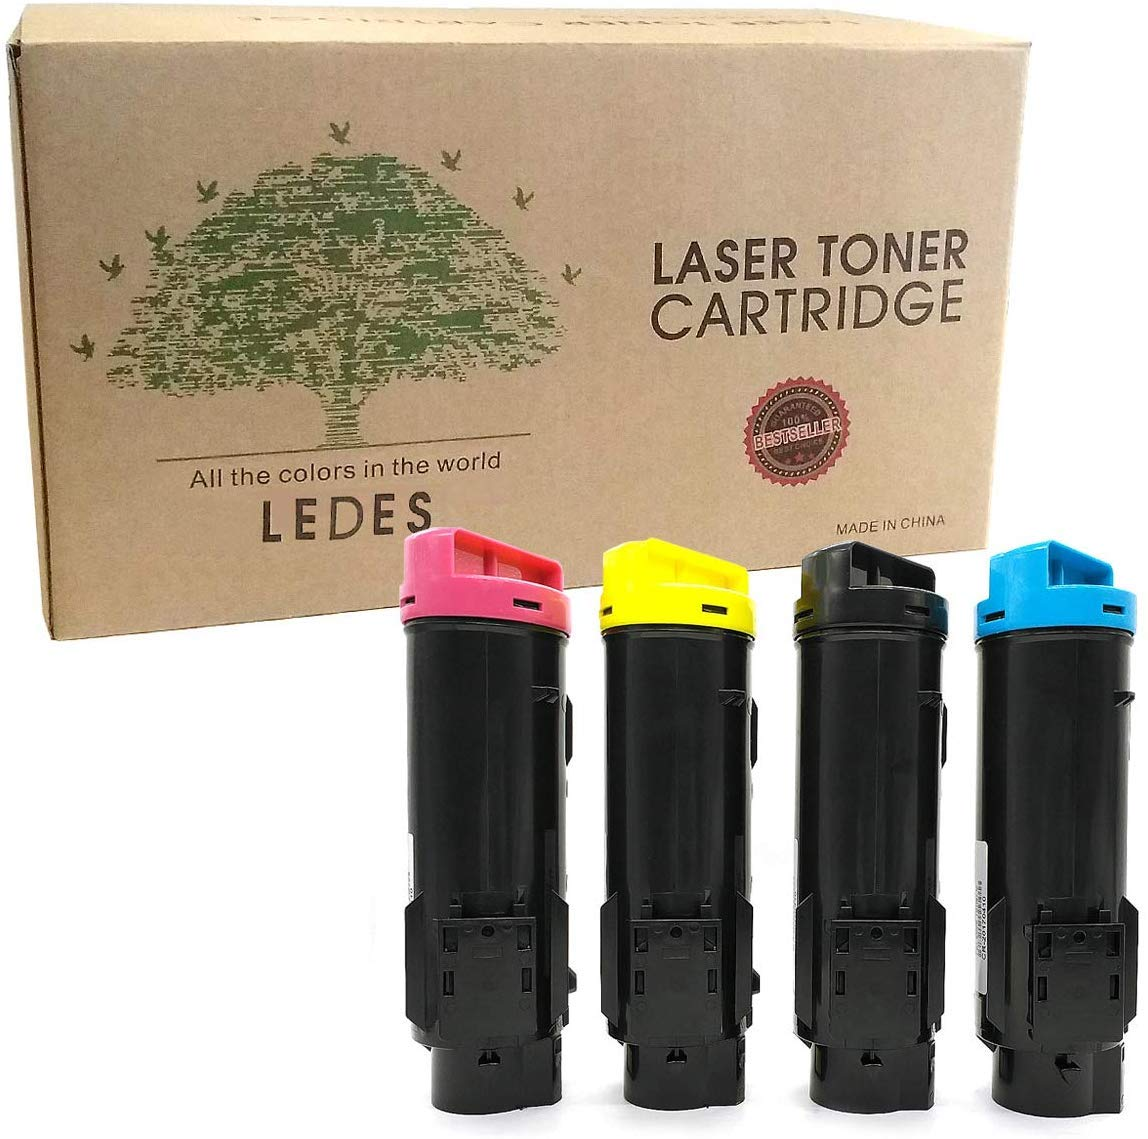 Ledes 5-Pack Compatible Toner Cartridge for Dell H825 S2825 H625 2825 H825cdw S2825cdn H625cdw 593-BBOW 593-BBOX 593-BBOY 593-BBOZ Printers High Yield (2 Black, 1 Cyan, 1 Yellow, 1 Magenta)